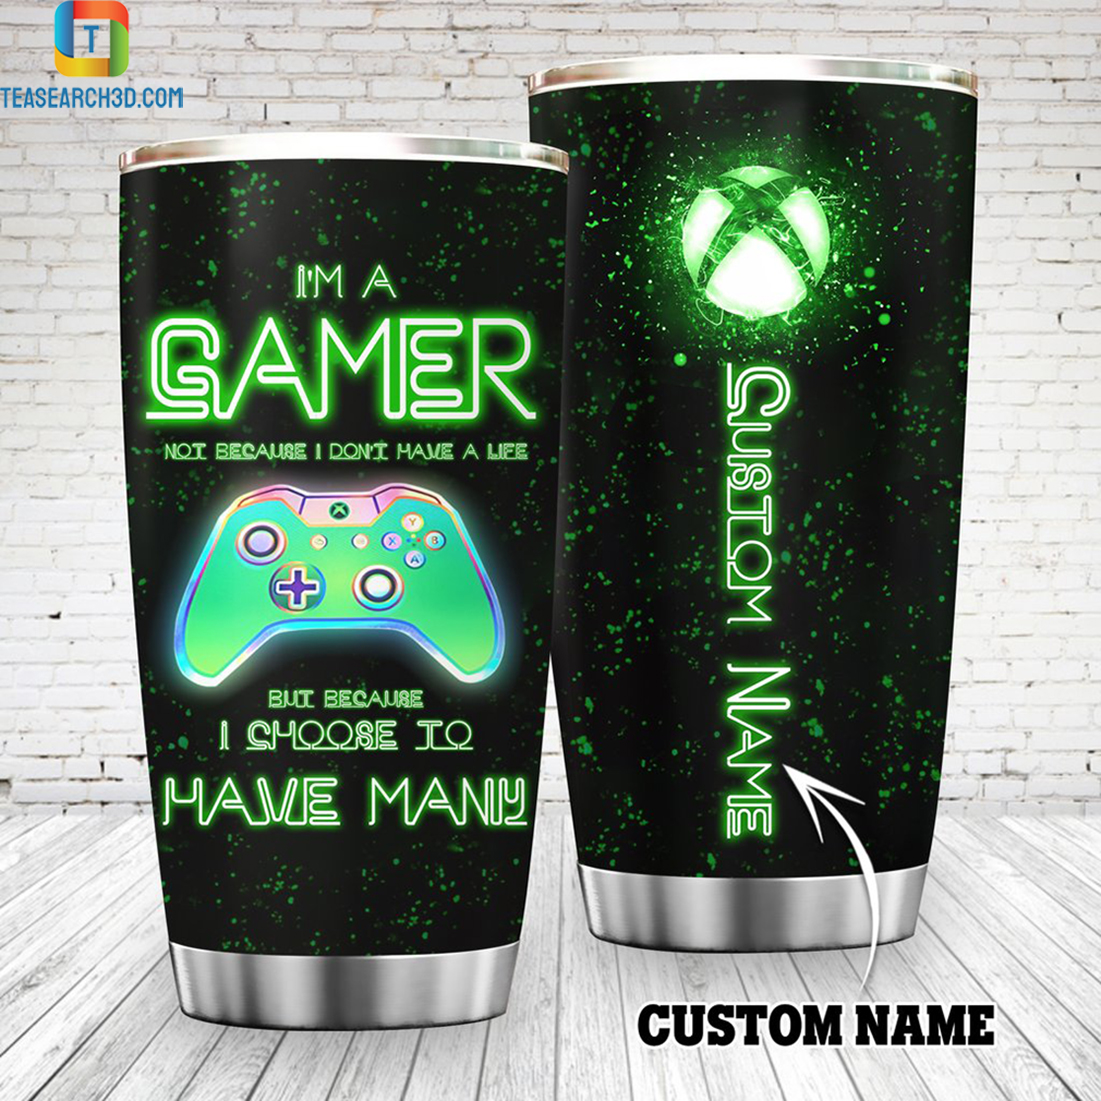 Personalized custom name Xbox I'm a gamer not because I don't have a life tumbler 1